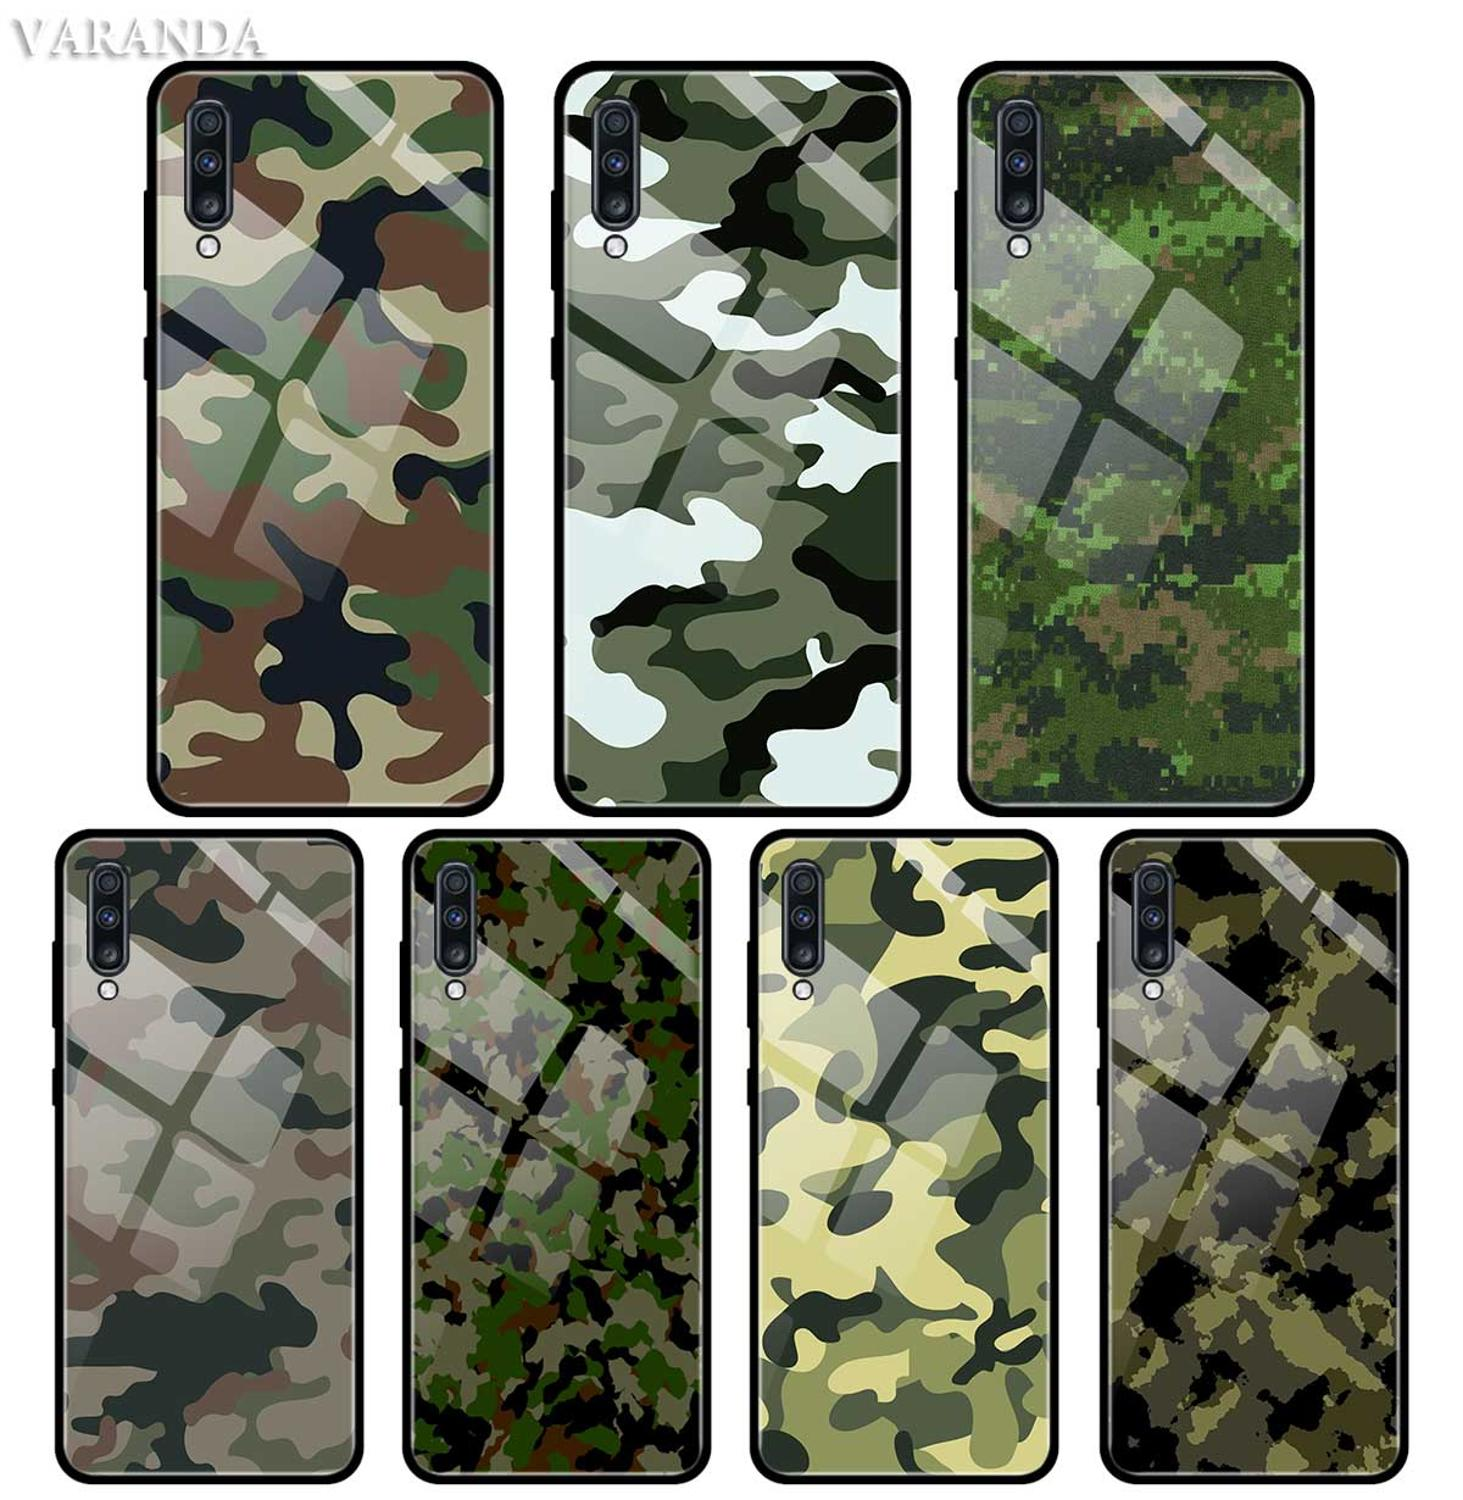 Camouflage Pattern Camo Military Army <font><b>Case</b></font> For <font><b>Samsung</b></font> A50 A40 A70 A71 A51 A30 A10 A10S A20S <font><b>M30S</b></font> J4 J6 Plus Tempered <font><b>Glass</b></font> Phon image